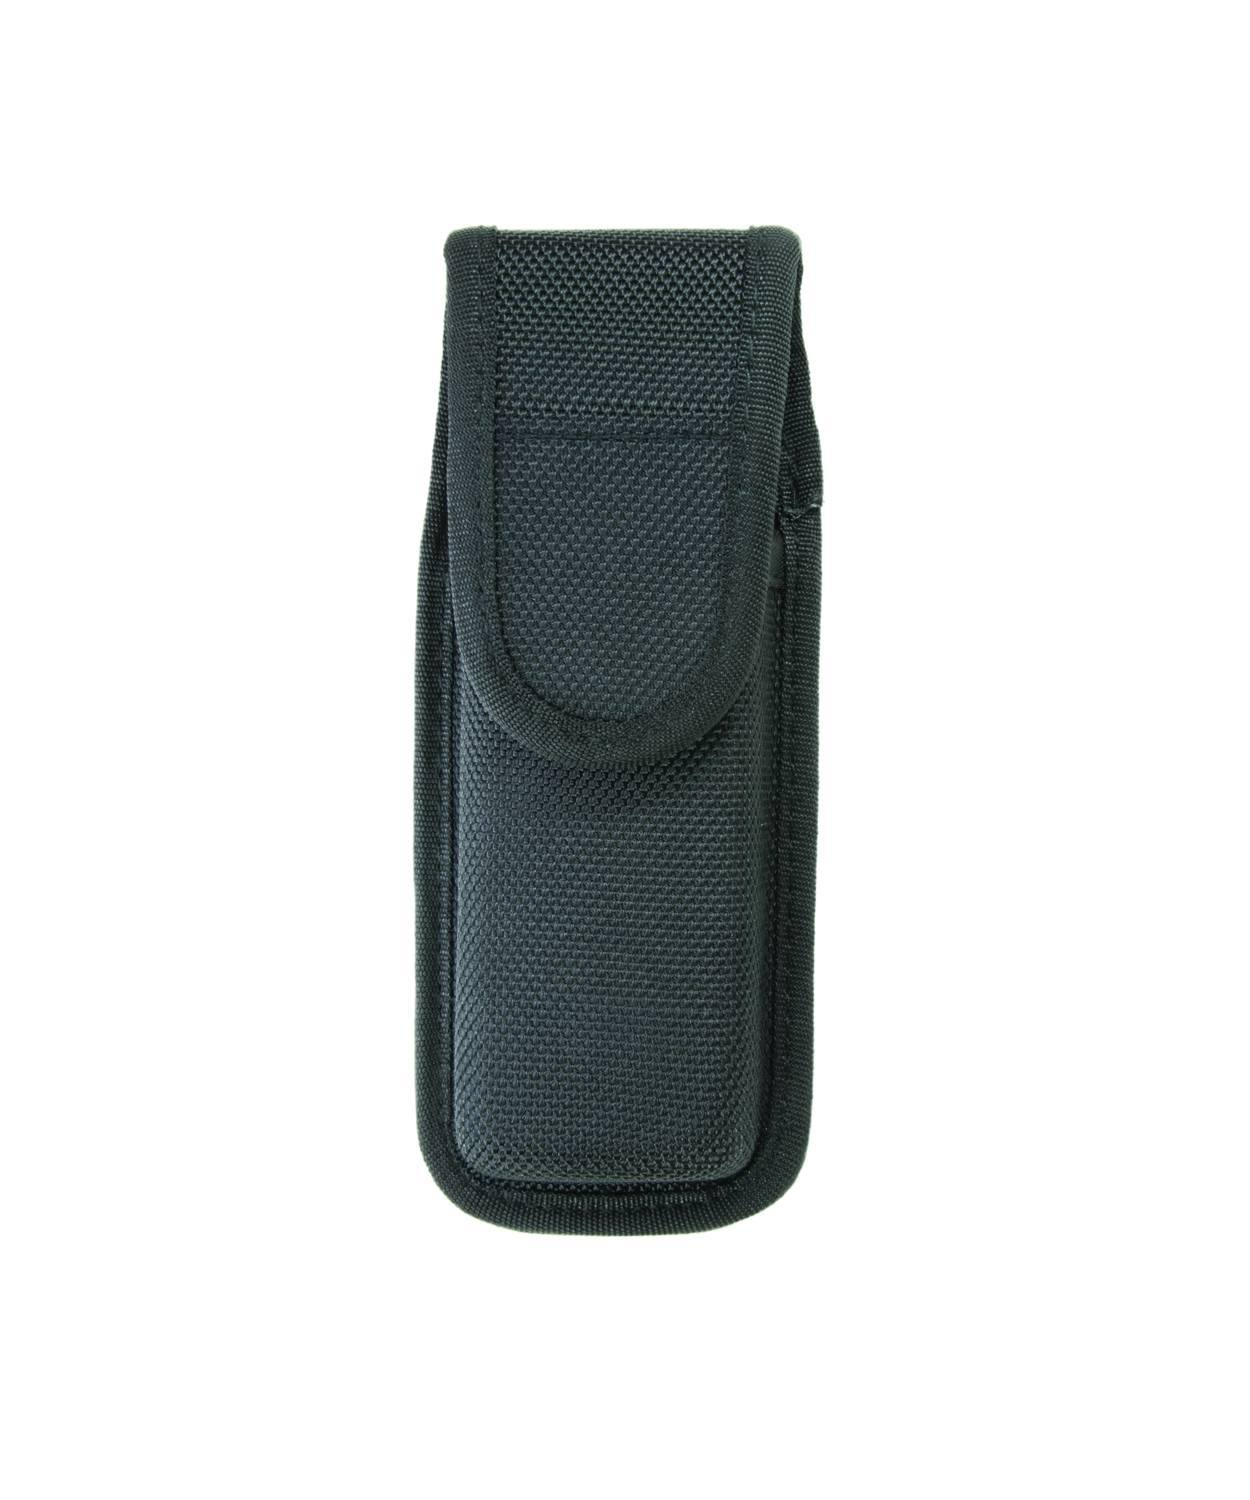 Single Magazine or Knife Pouch - Large-Hero's Pride